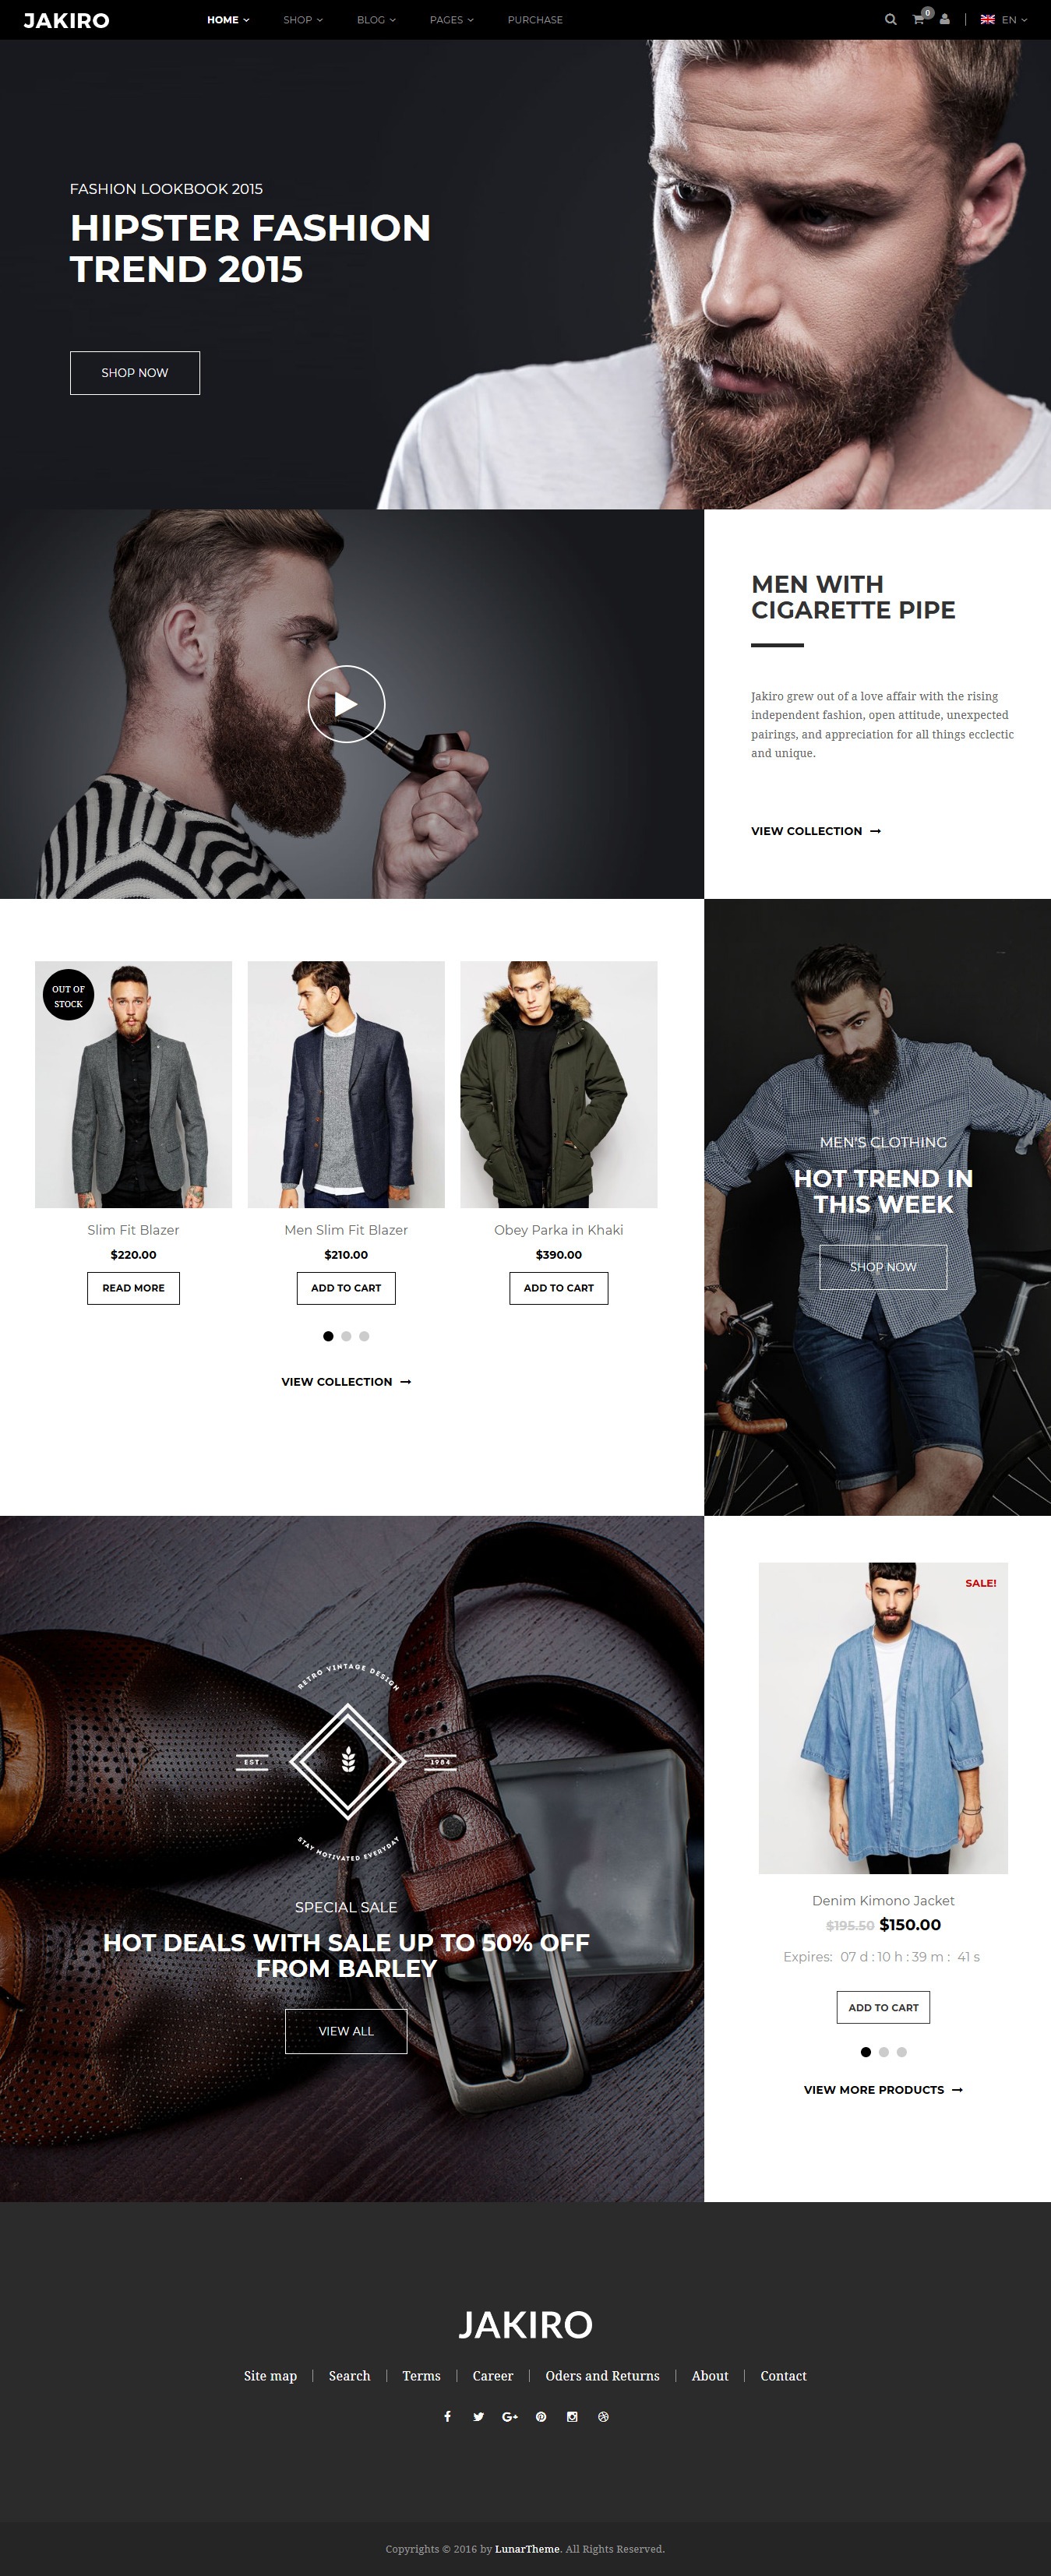 jakiro best premium fashion wordpress theme - 10+ Best Premium Fashion WordPress Themes